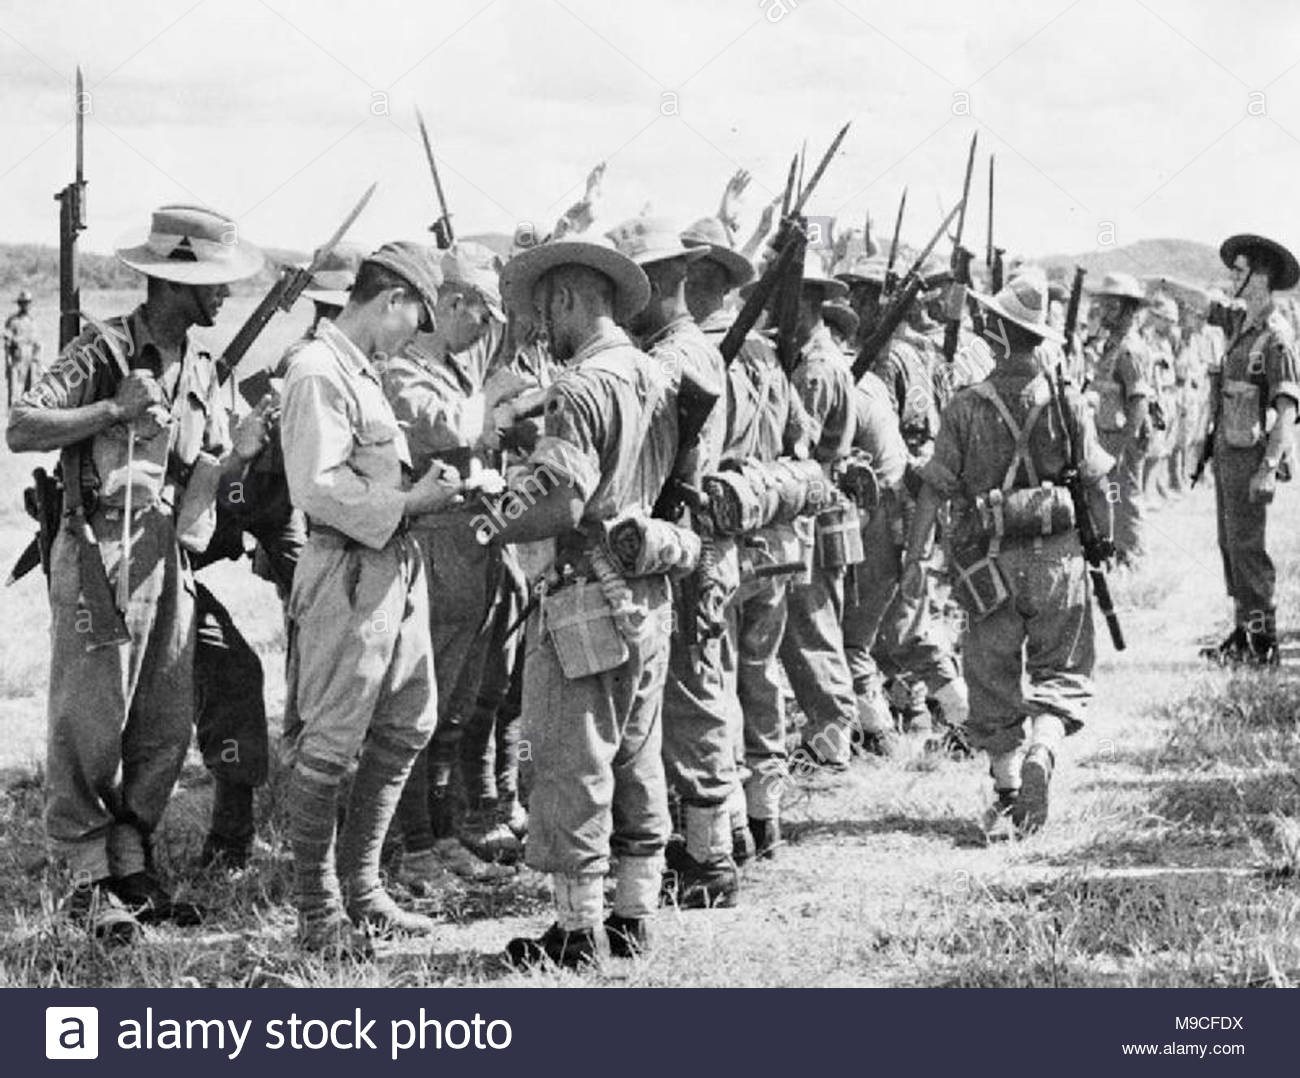 Japanese Surrender In Malaya  Men Of The Th Indian Division At Kuala Lumpur Search Japanese Prisoners Soon After They Had Been Disarmed